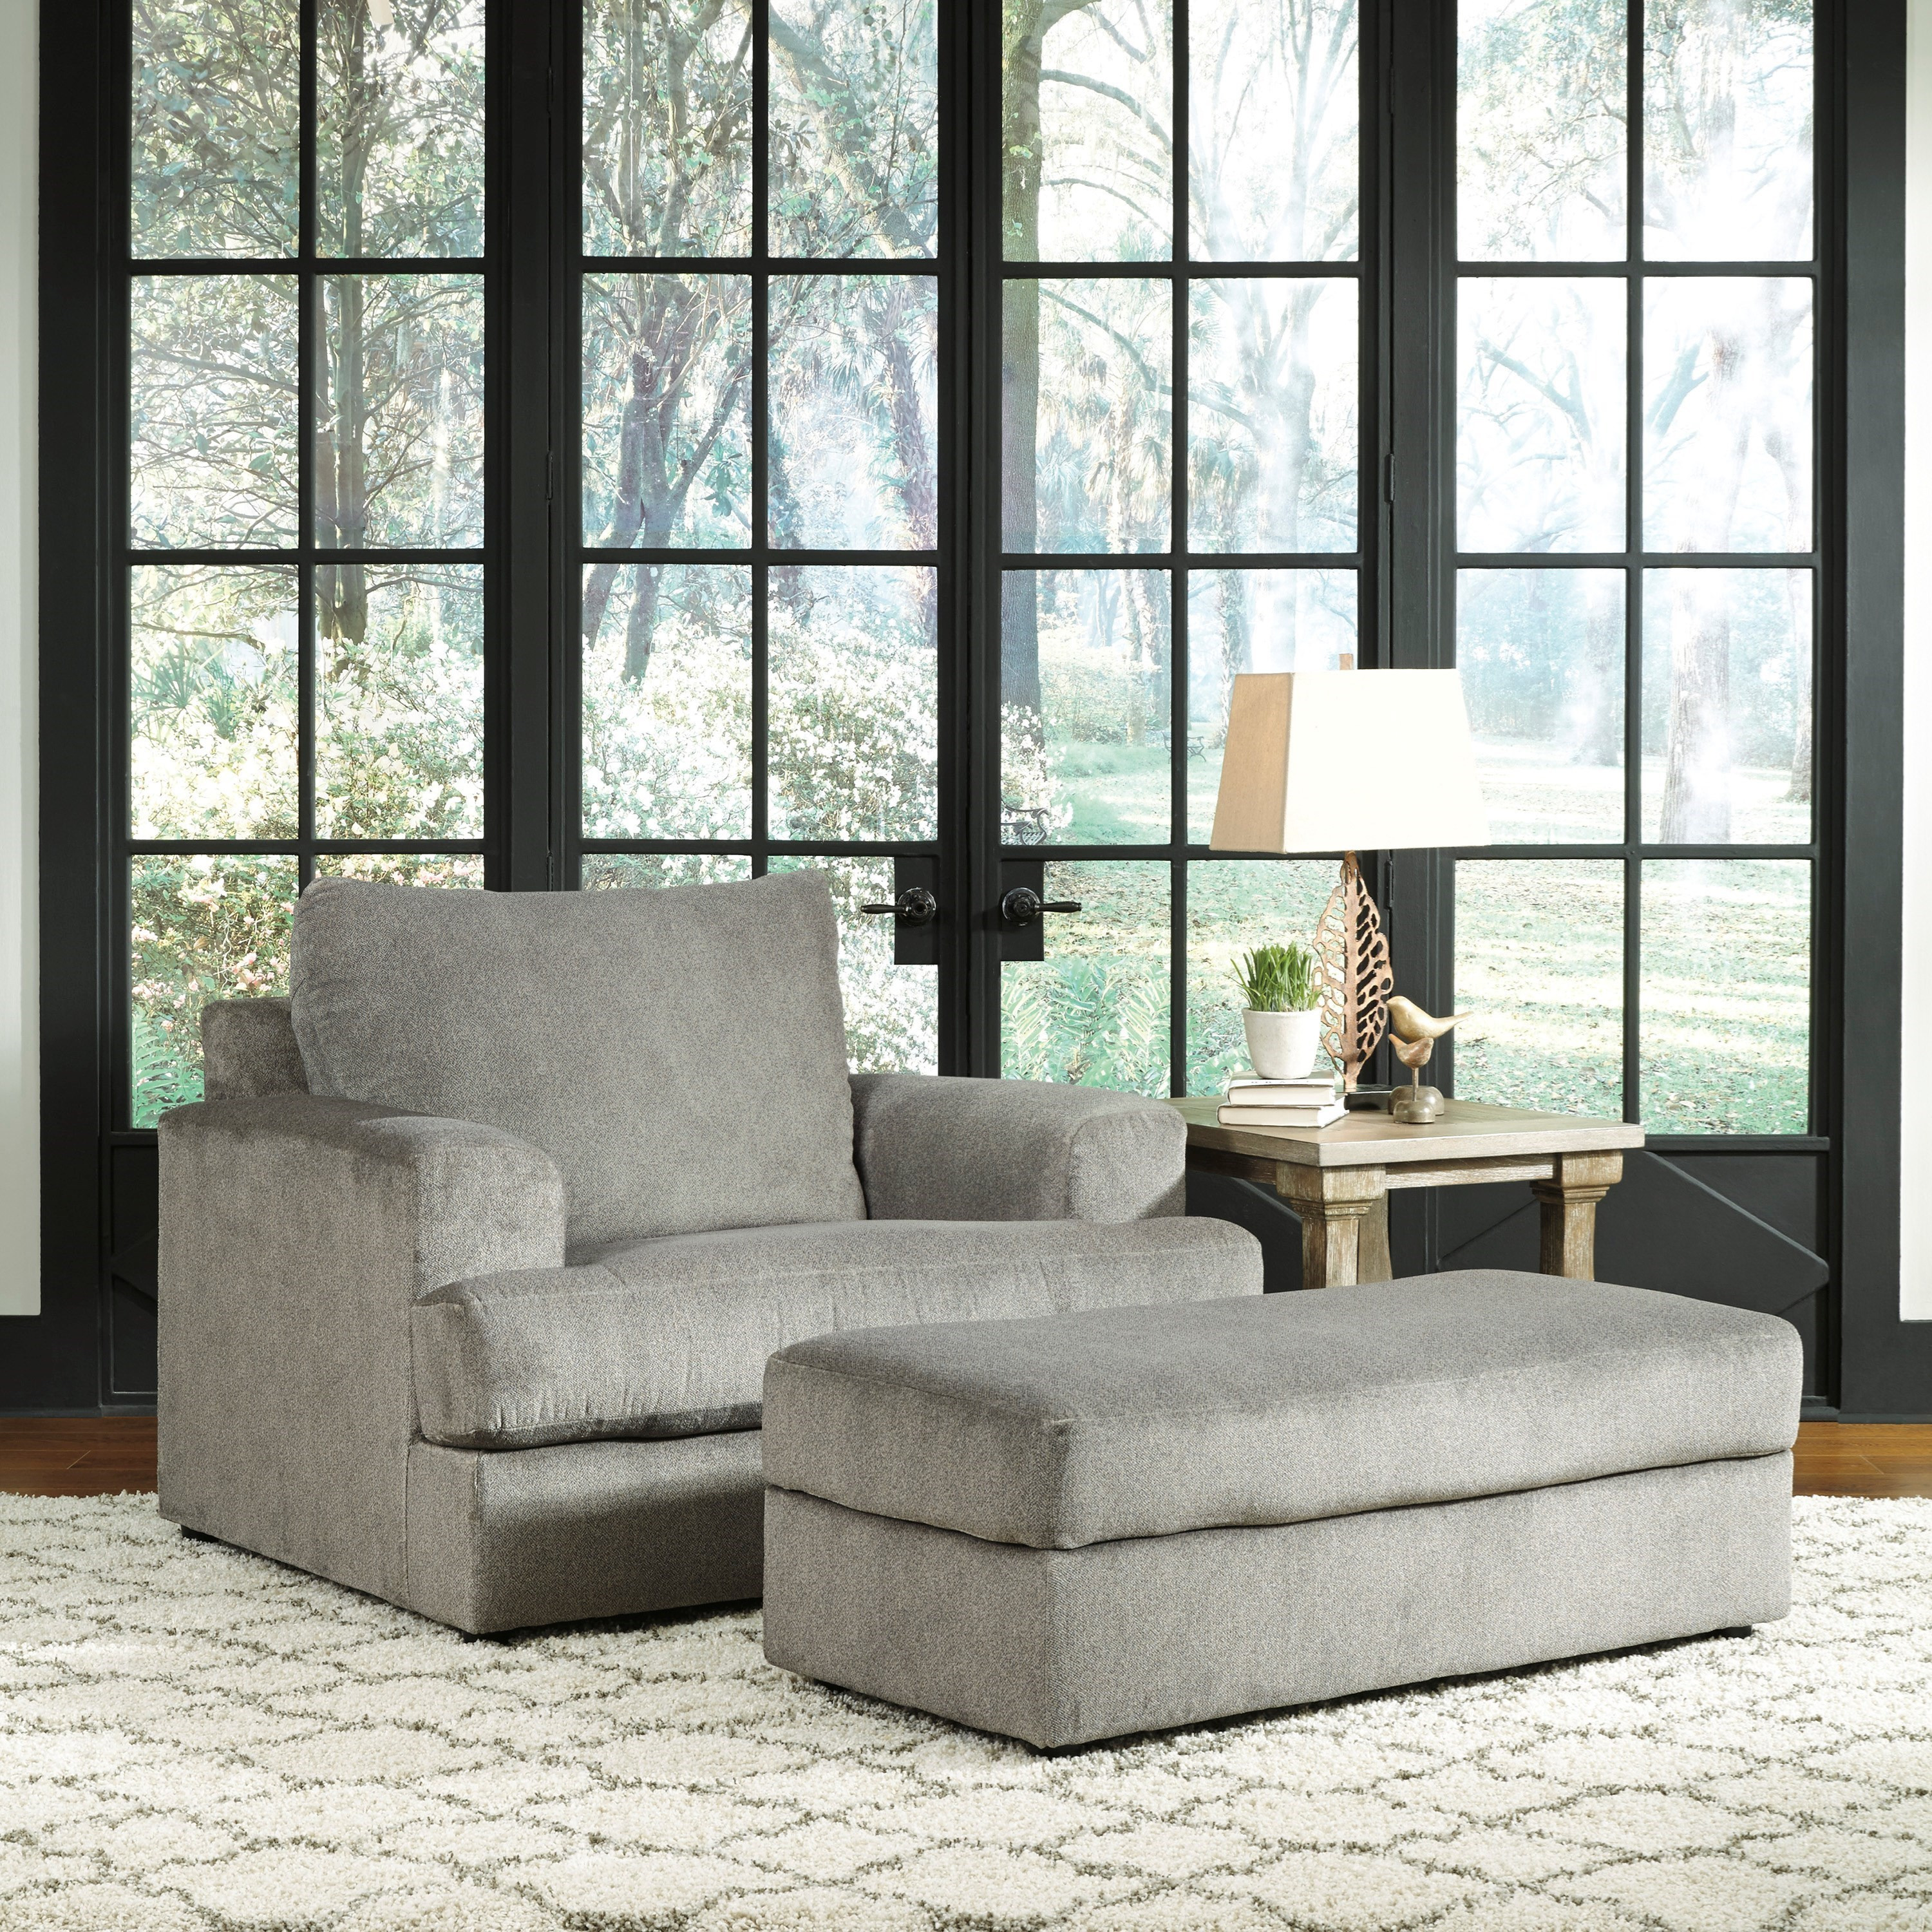 Soletren Chair and a Half with Ottoman by Signature Design by Ashley at Zak's Warehouse Clearance Center